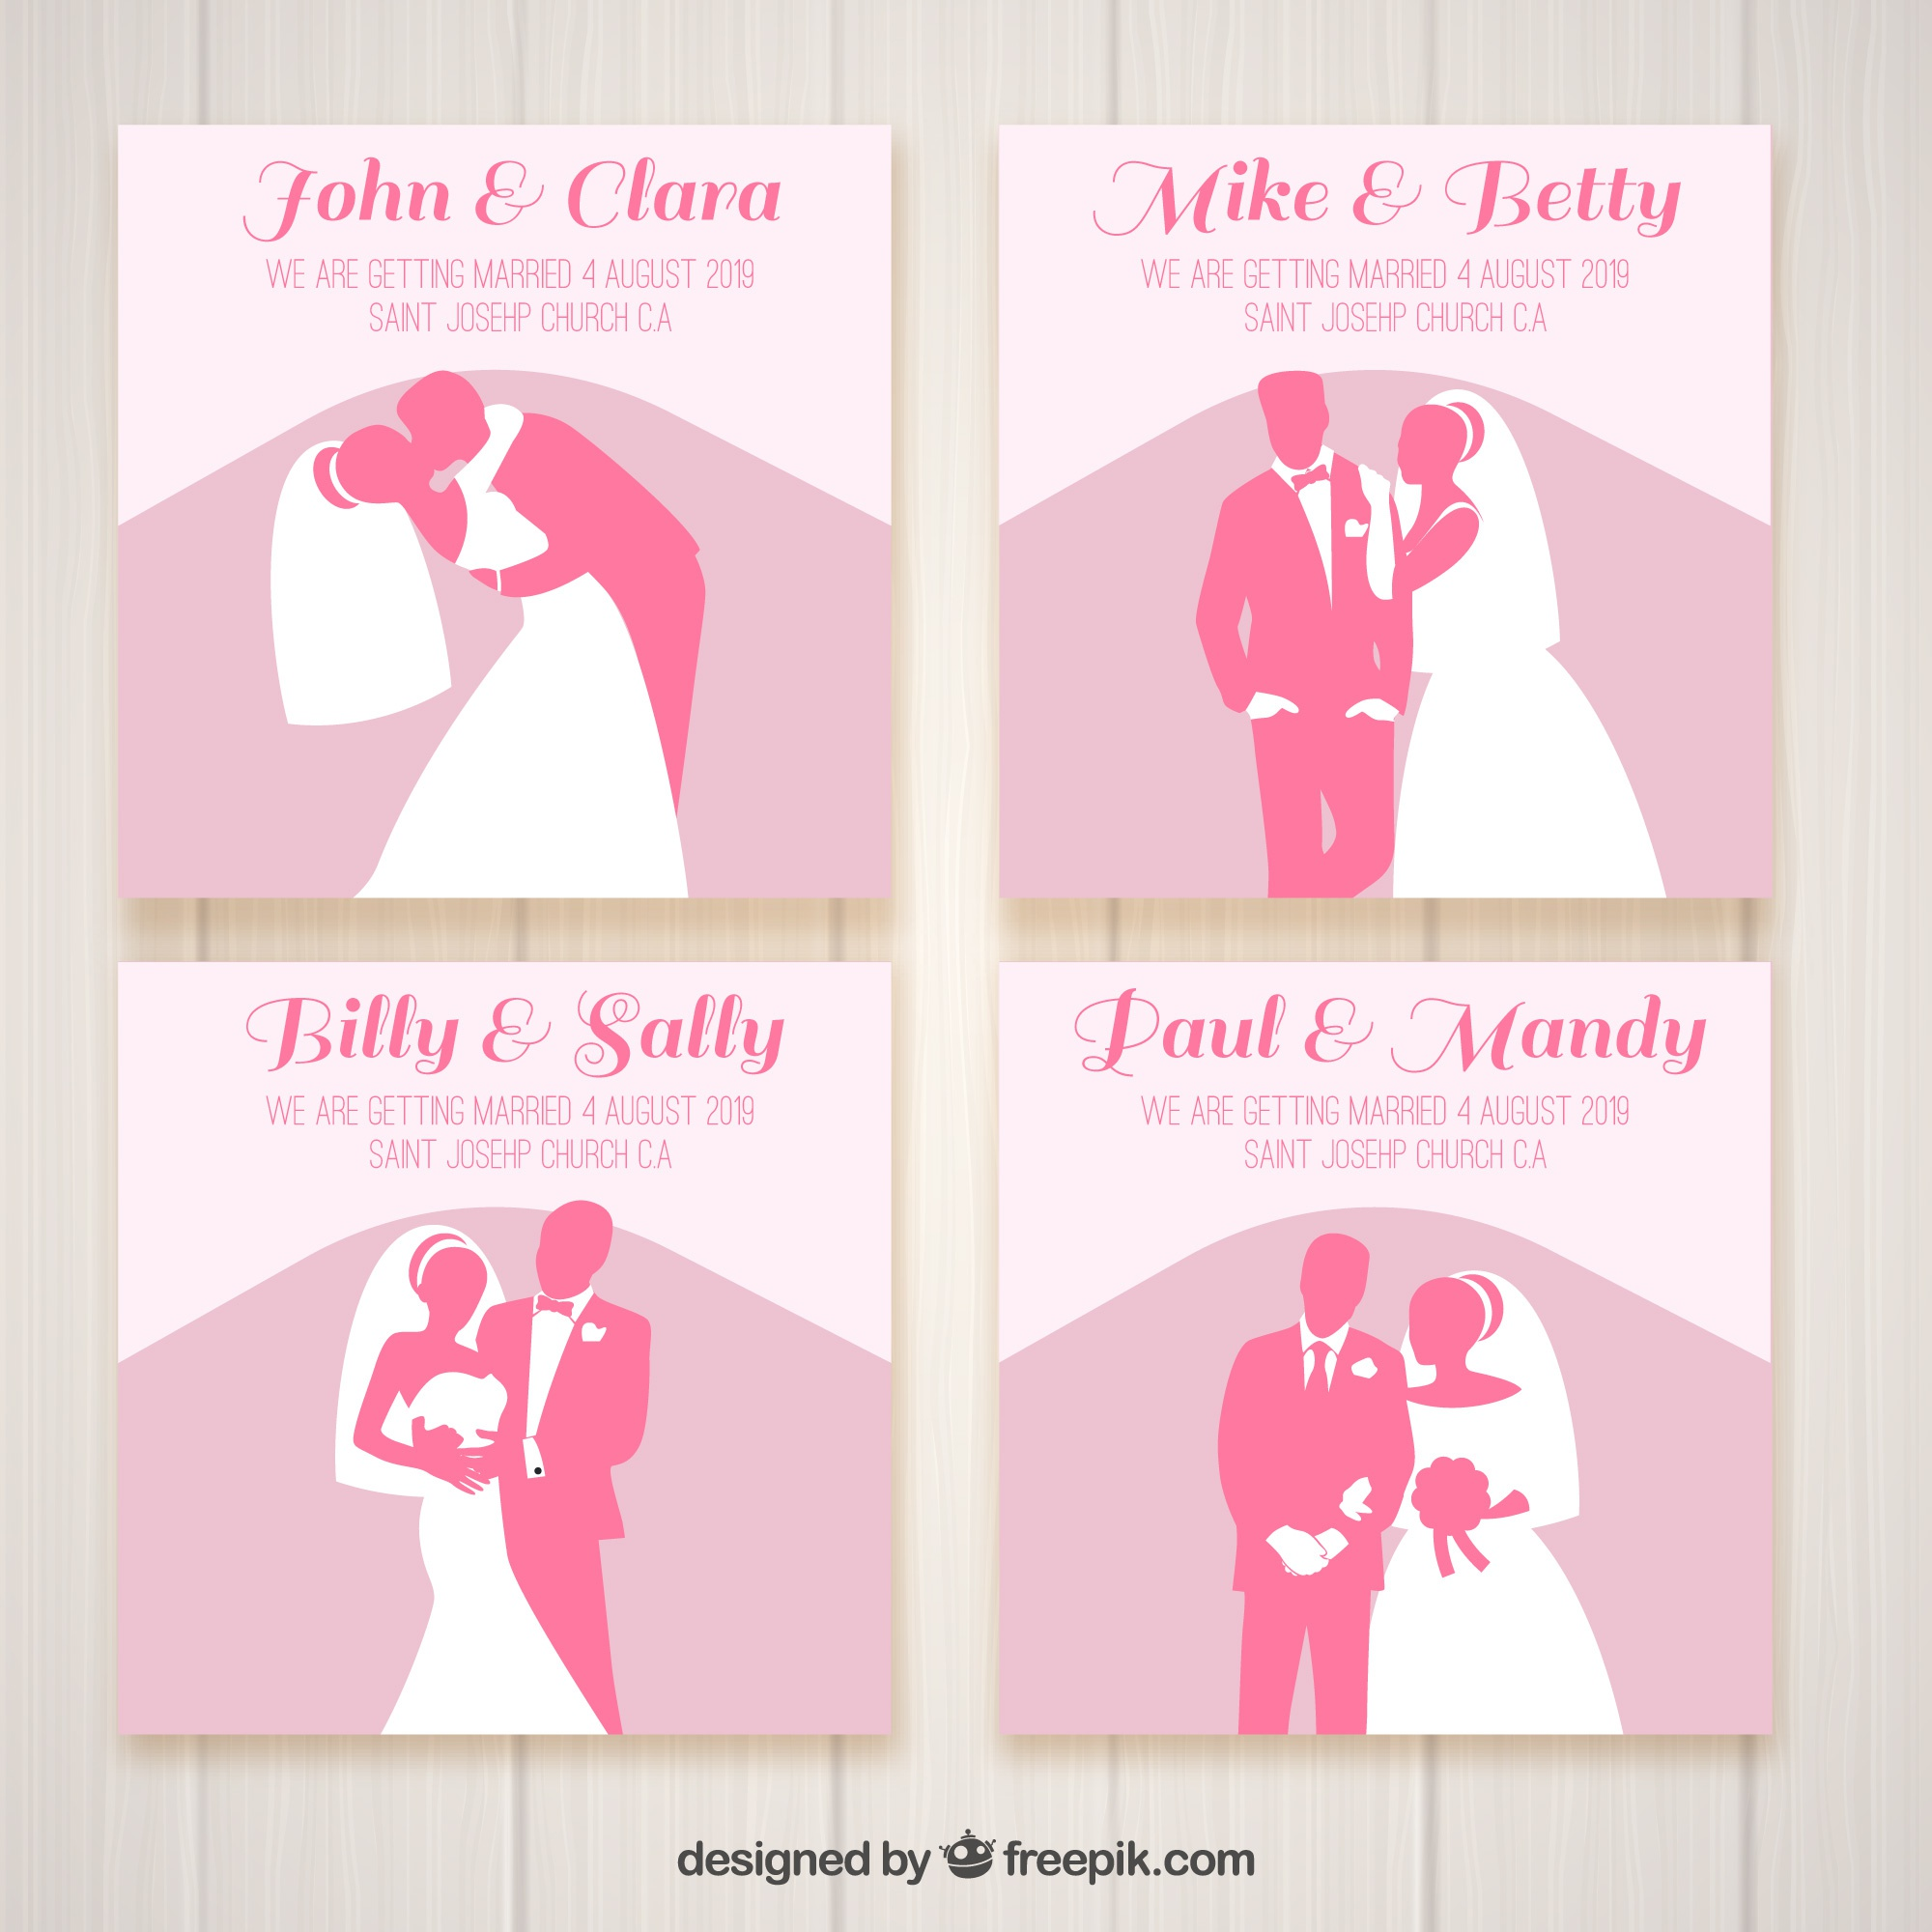 Four wedding invitations with pink silhouettes